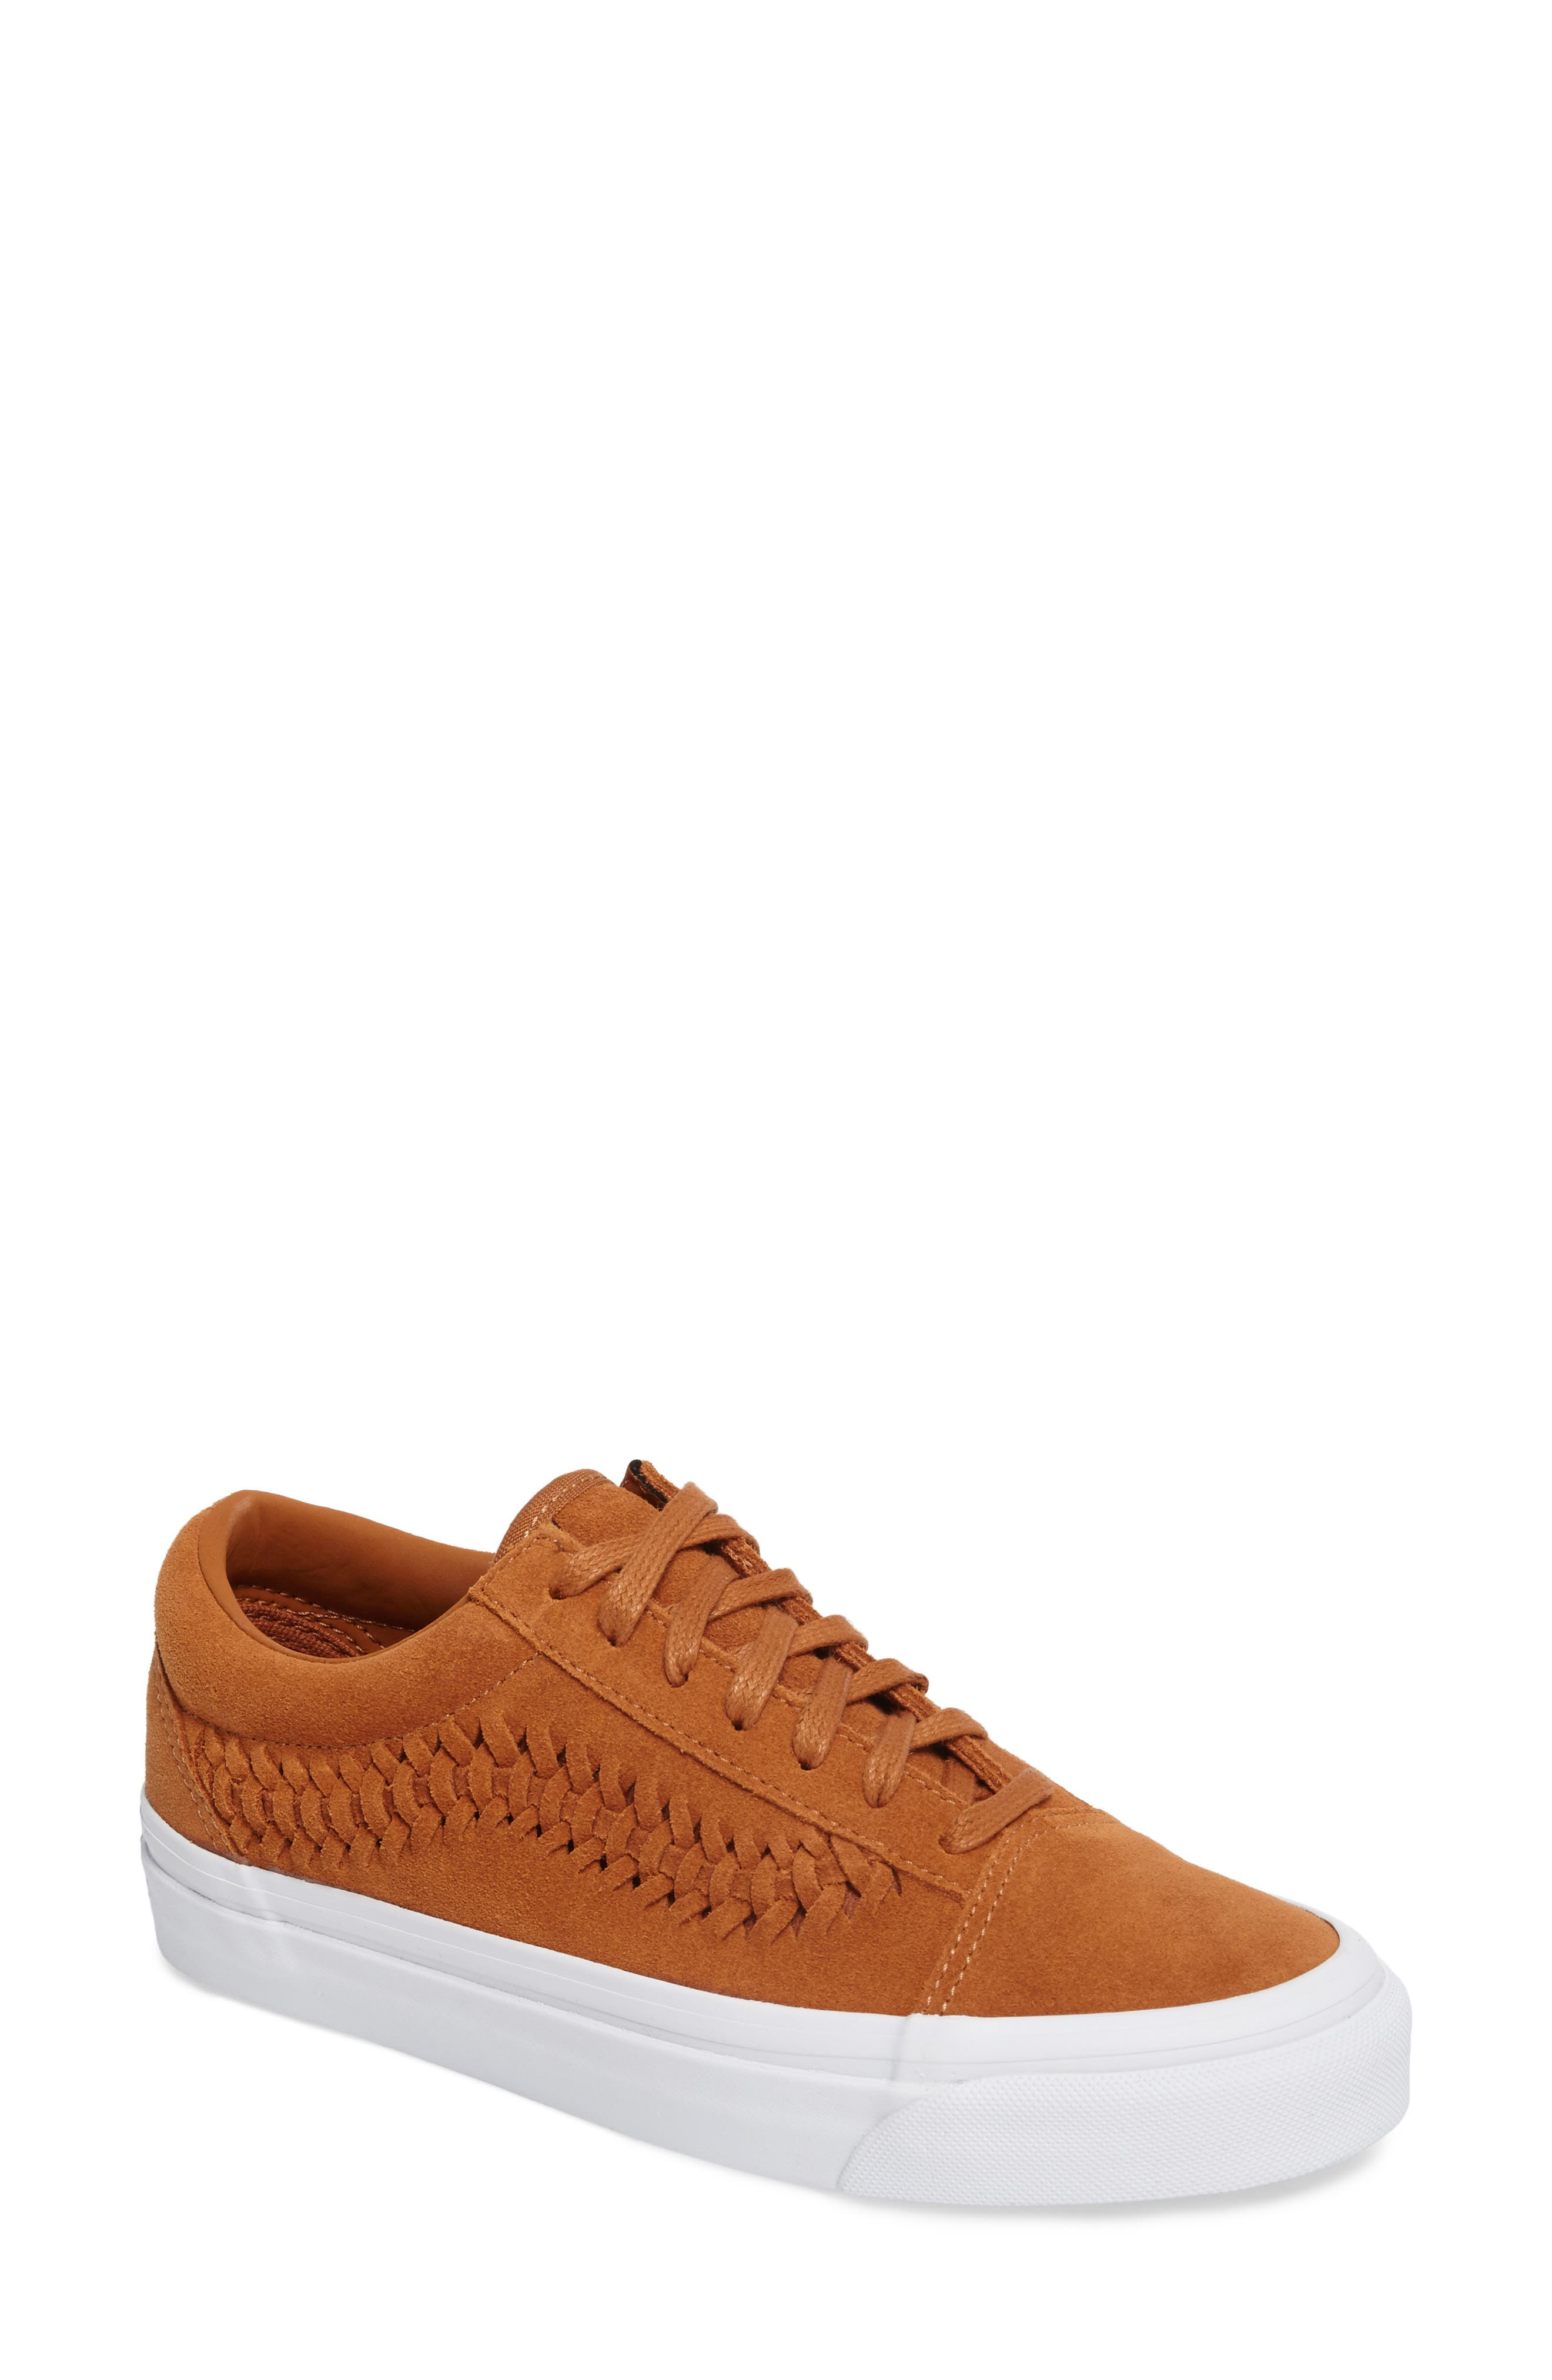 Main Image - Vans Old Skool Weave DX Sneaker (Women)